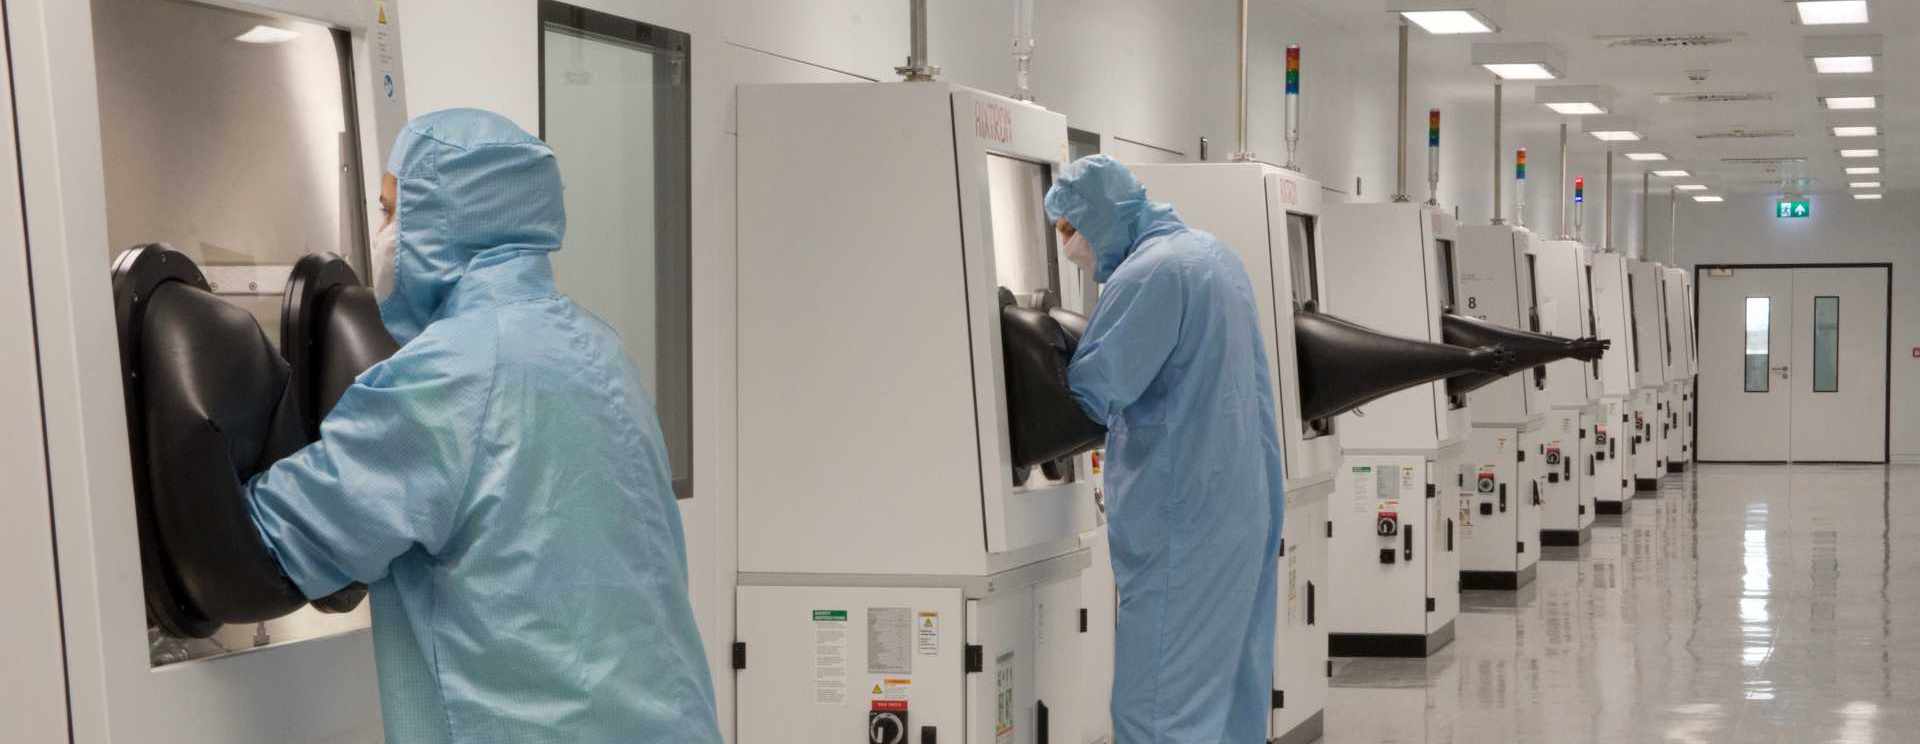 CROP - Based in Cardiff, and now opening a new plant in Newport (where the new Catapult will be co-located), IQE is the global leader in compound semiconductor technology.